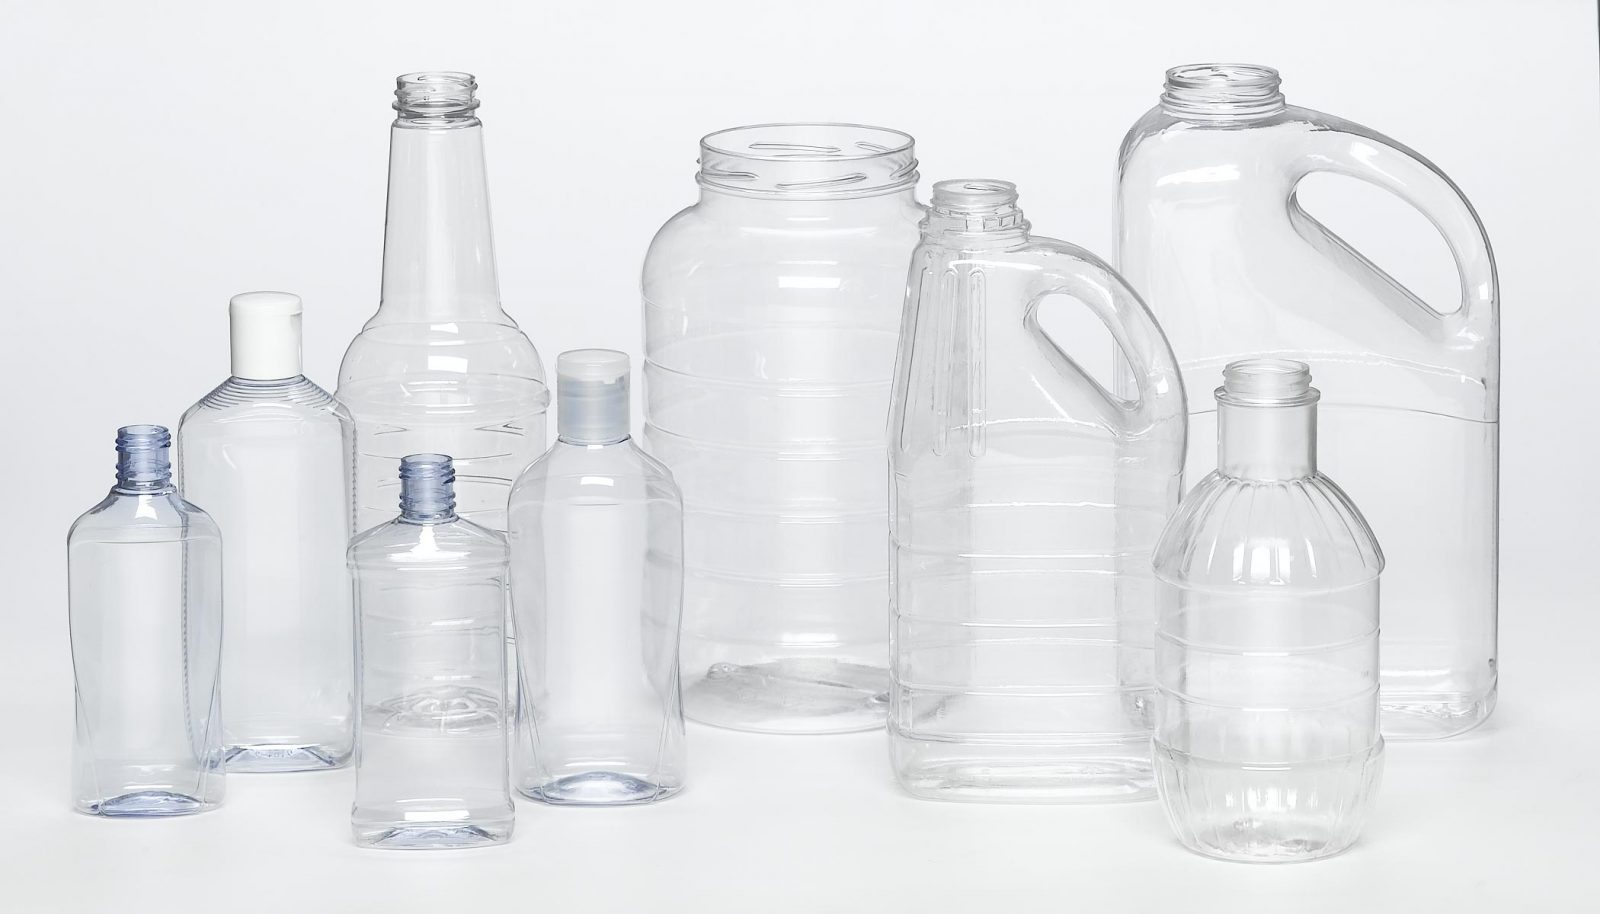 PET clear plastic bottles of various shapes and sizes